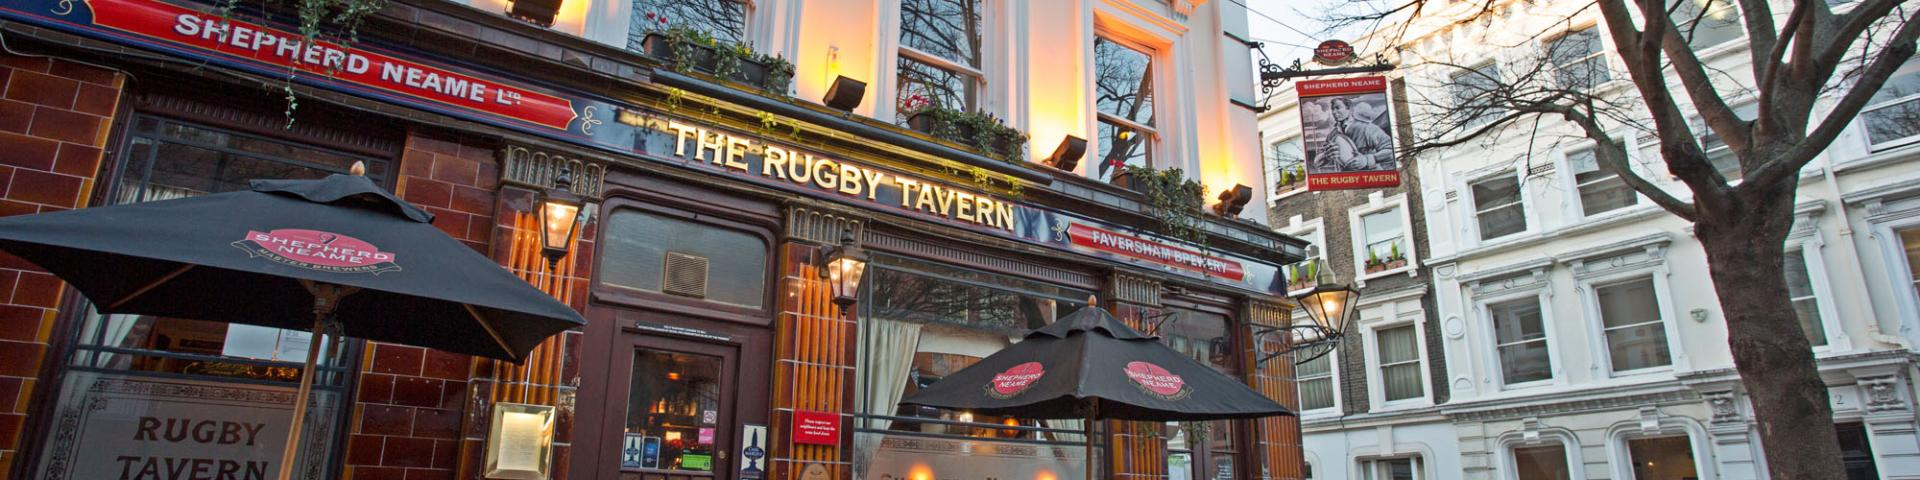 Rugby Tavern, Clerkenwell, London